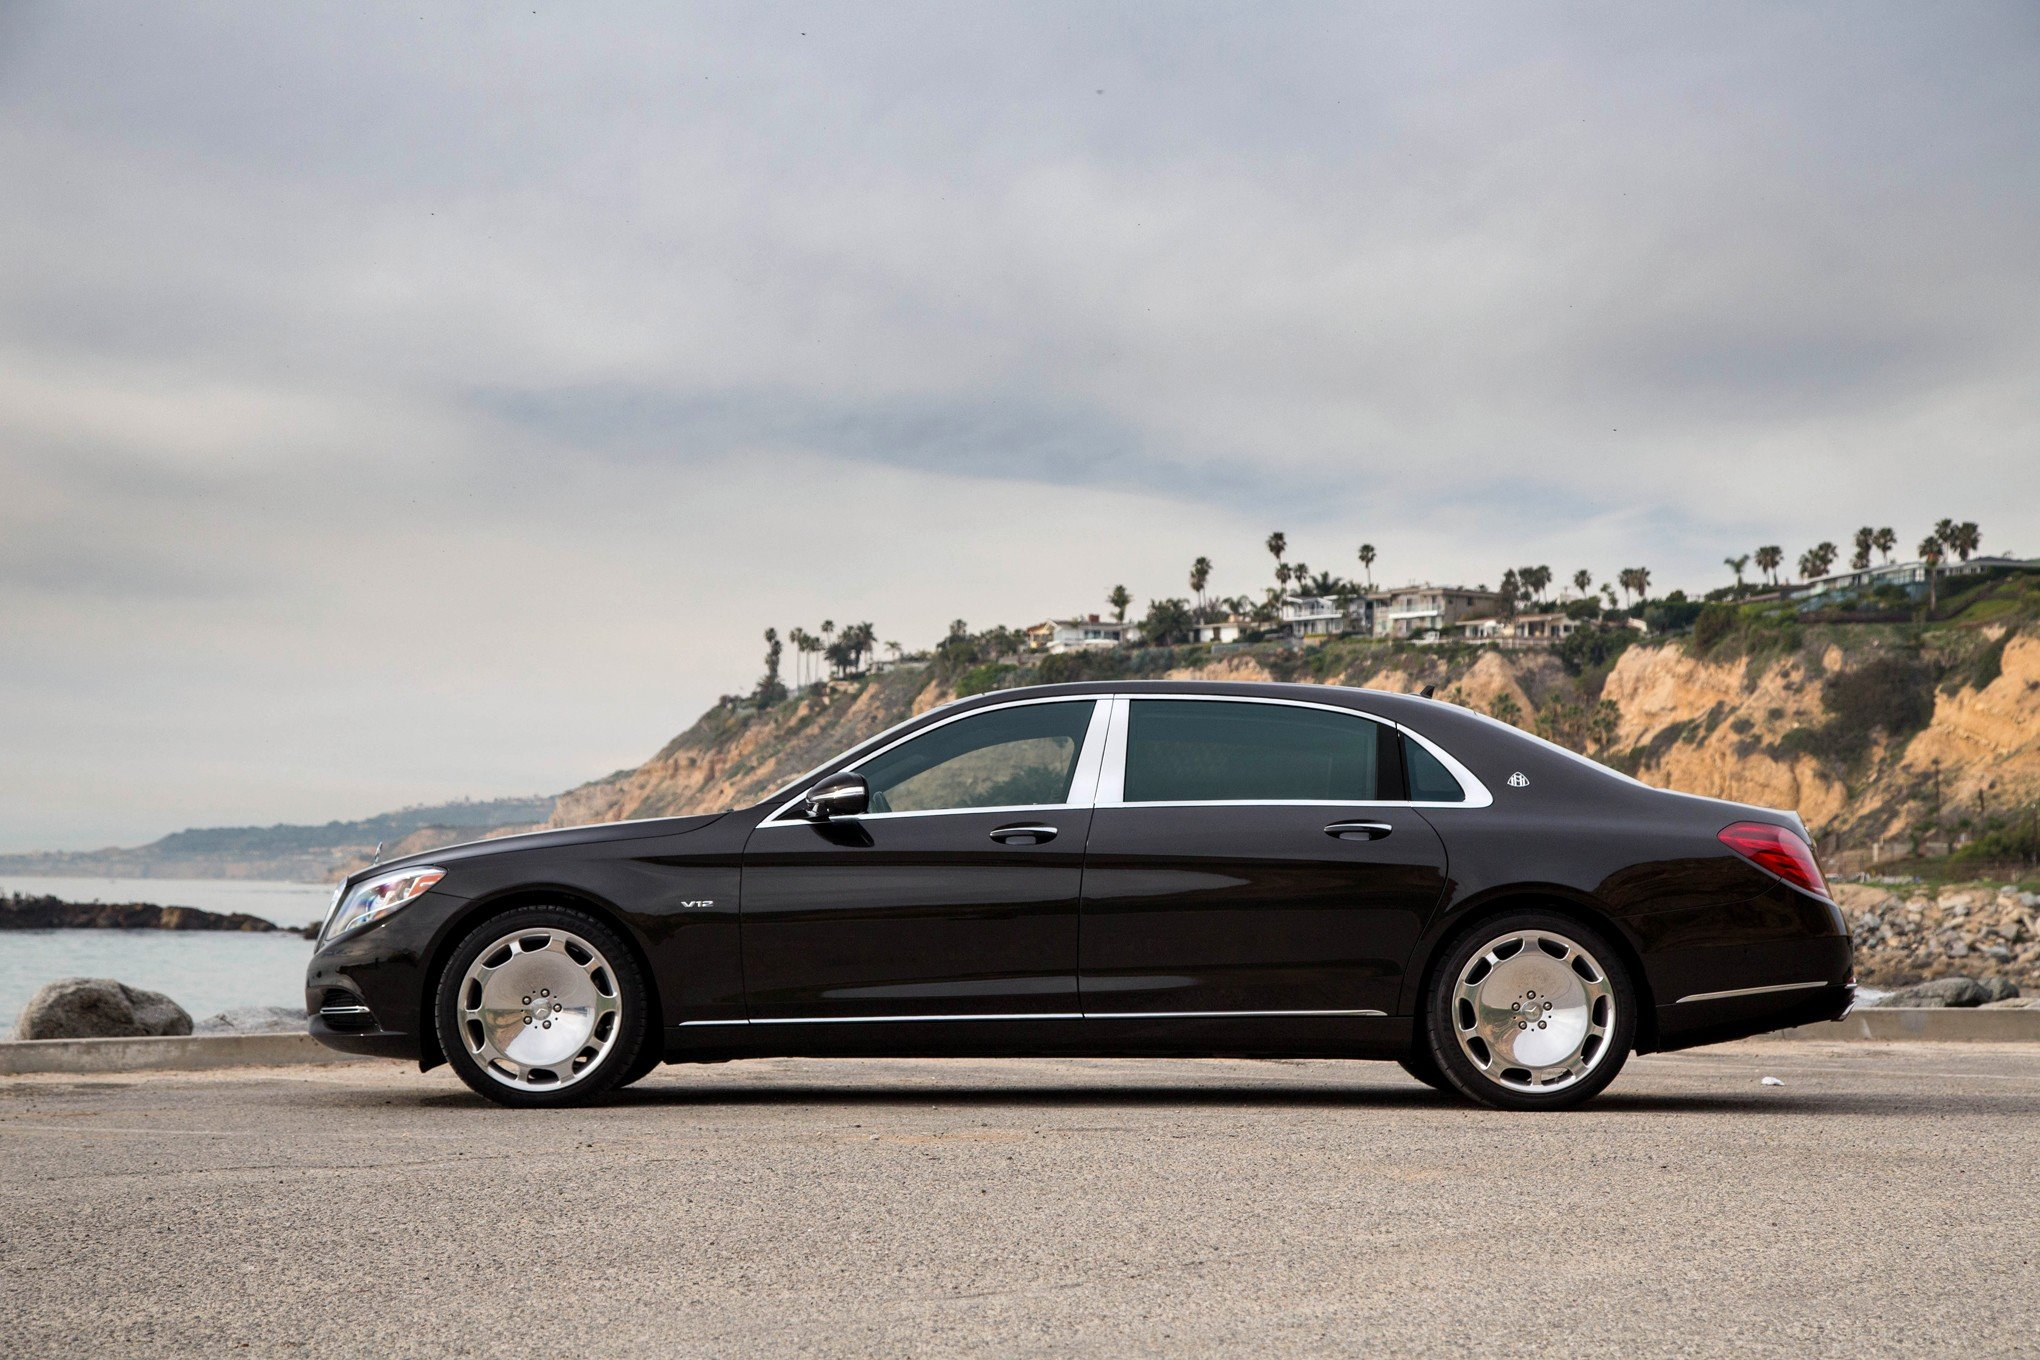 Mercedes Maybach S600 Wallpapers HD Download 2040x1360